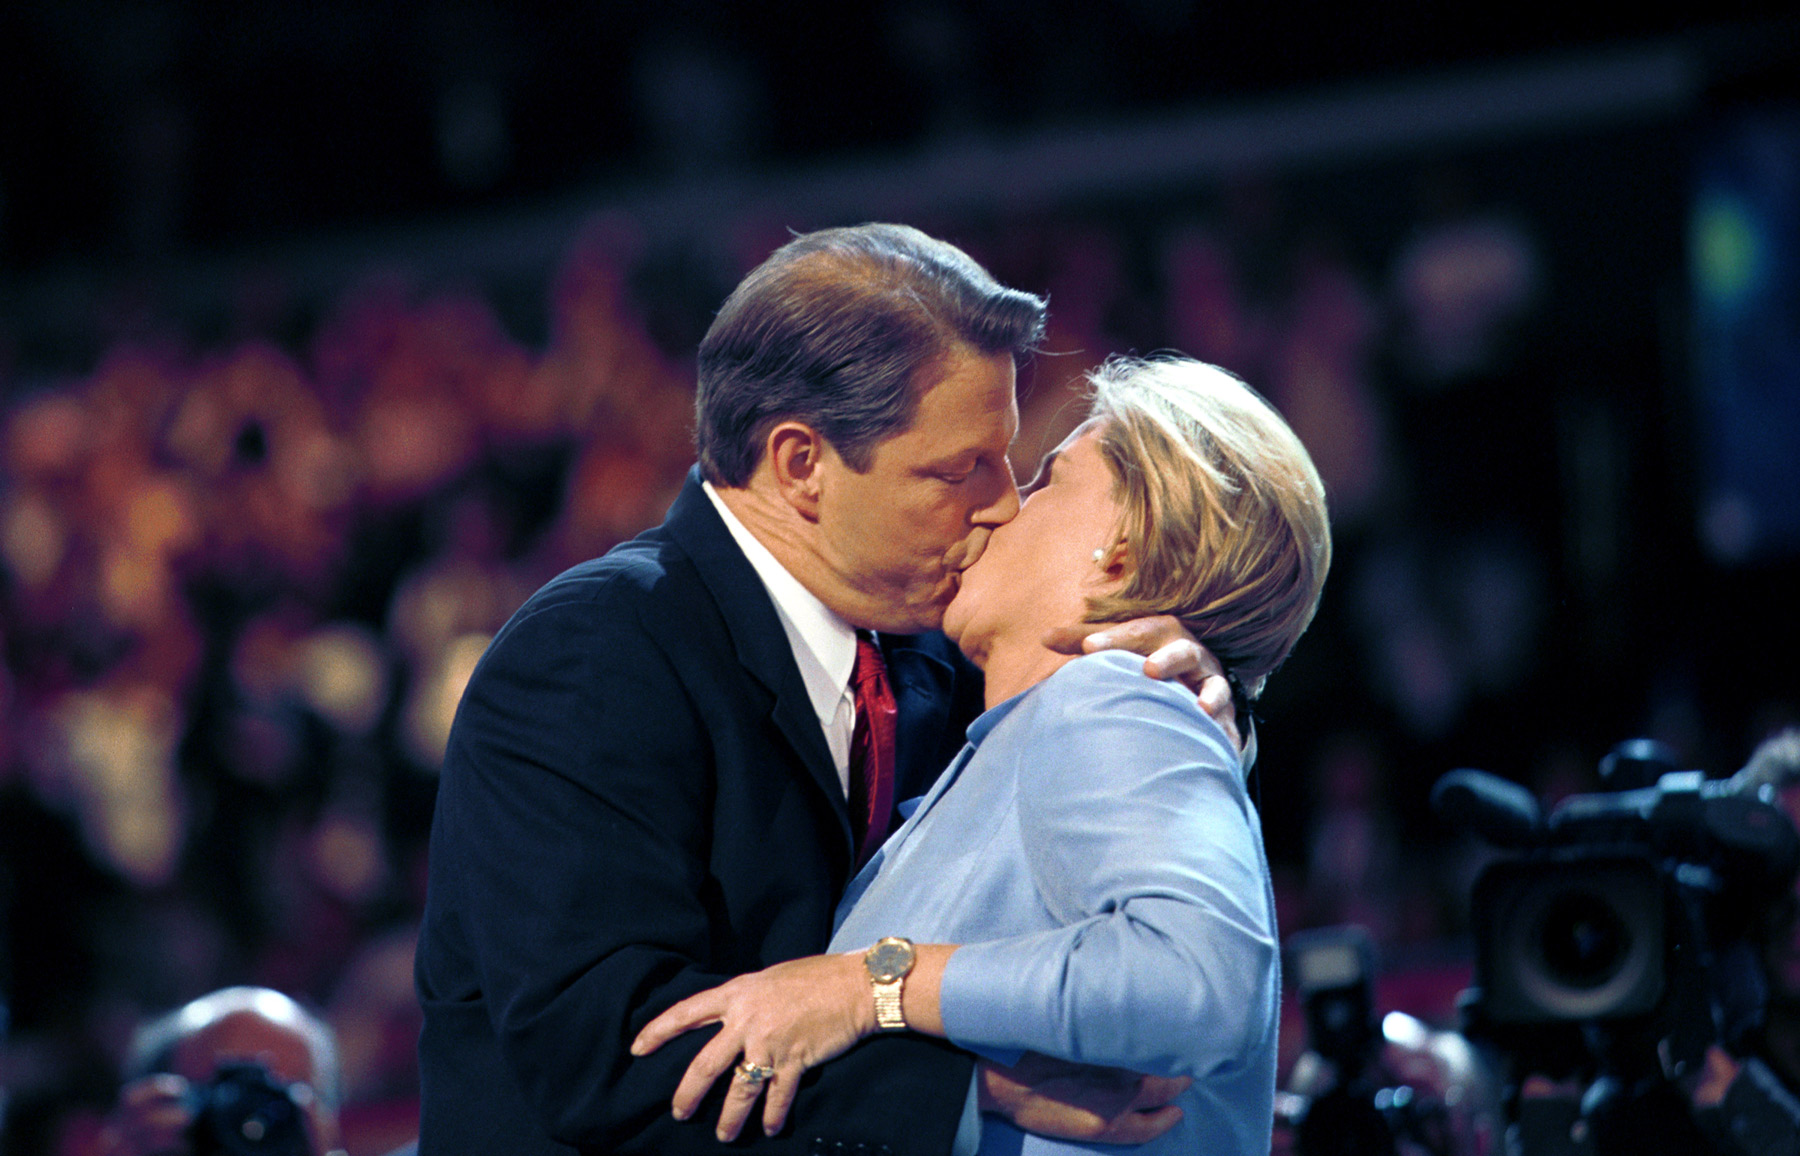 4 Memorable Fiascos from Past Democratic Conventions